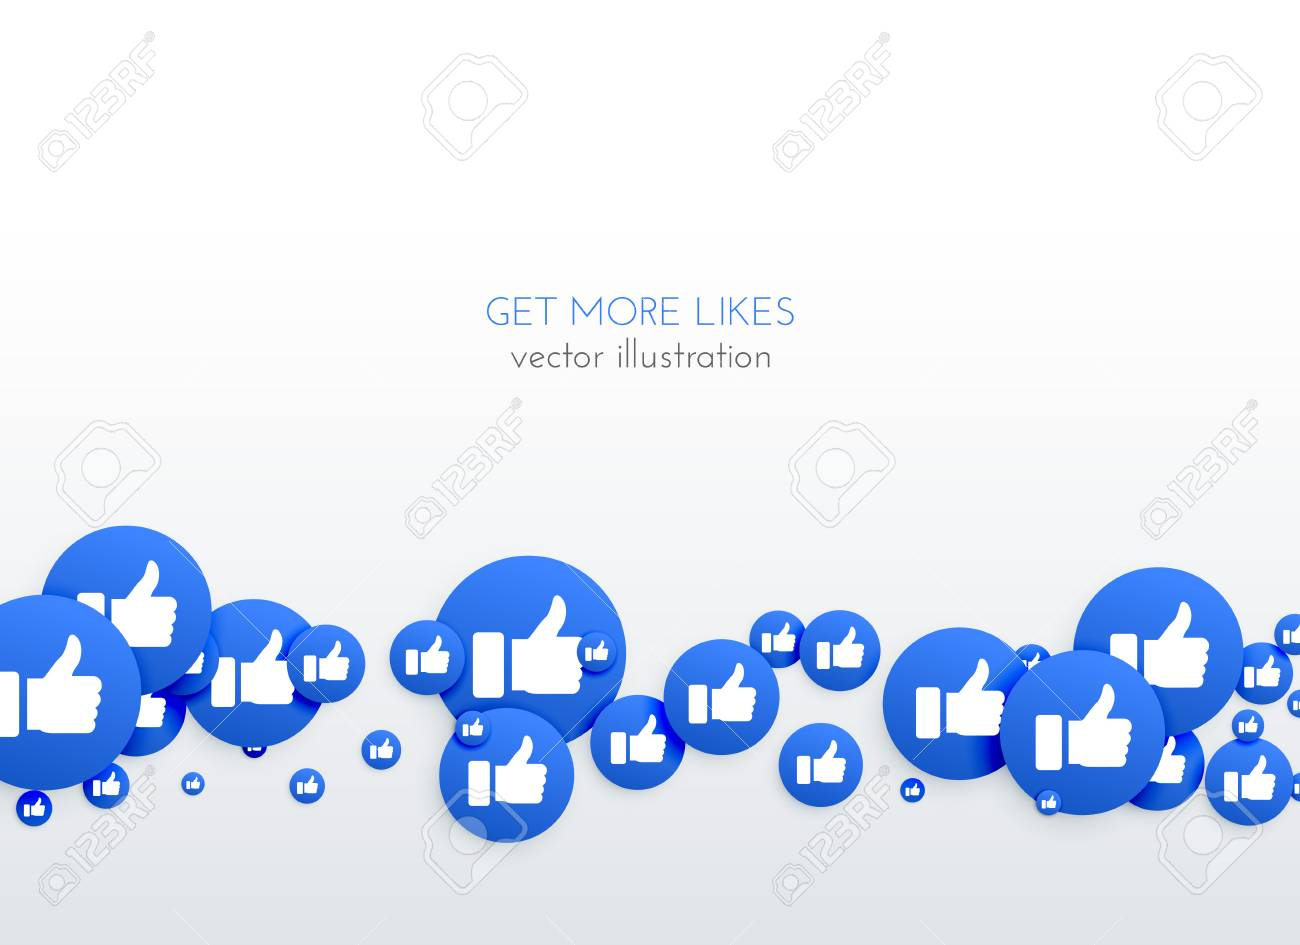 social media network blue likes thumb up icons background - 90870105